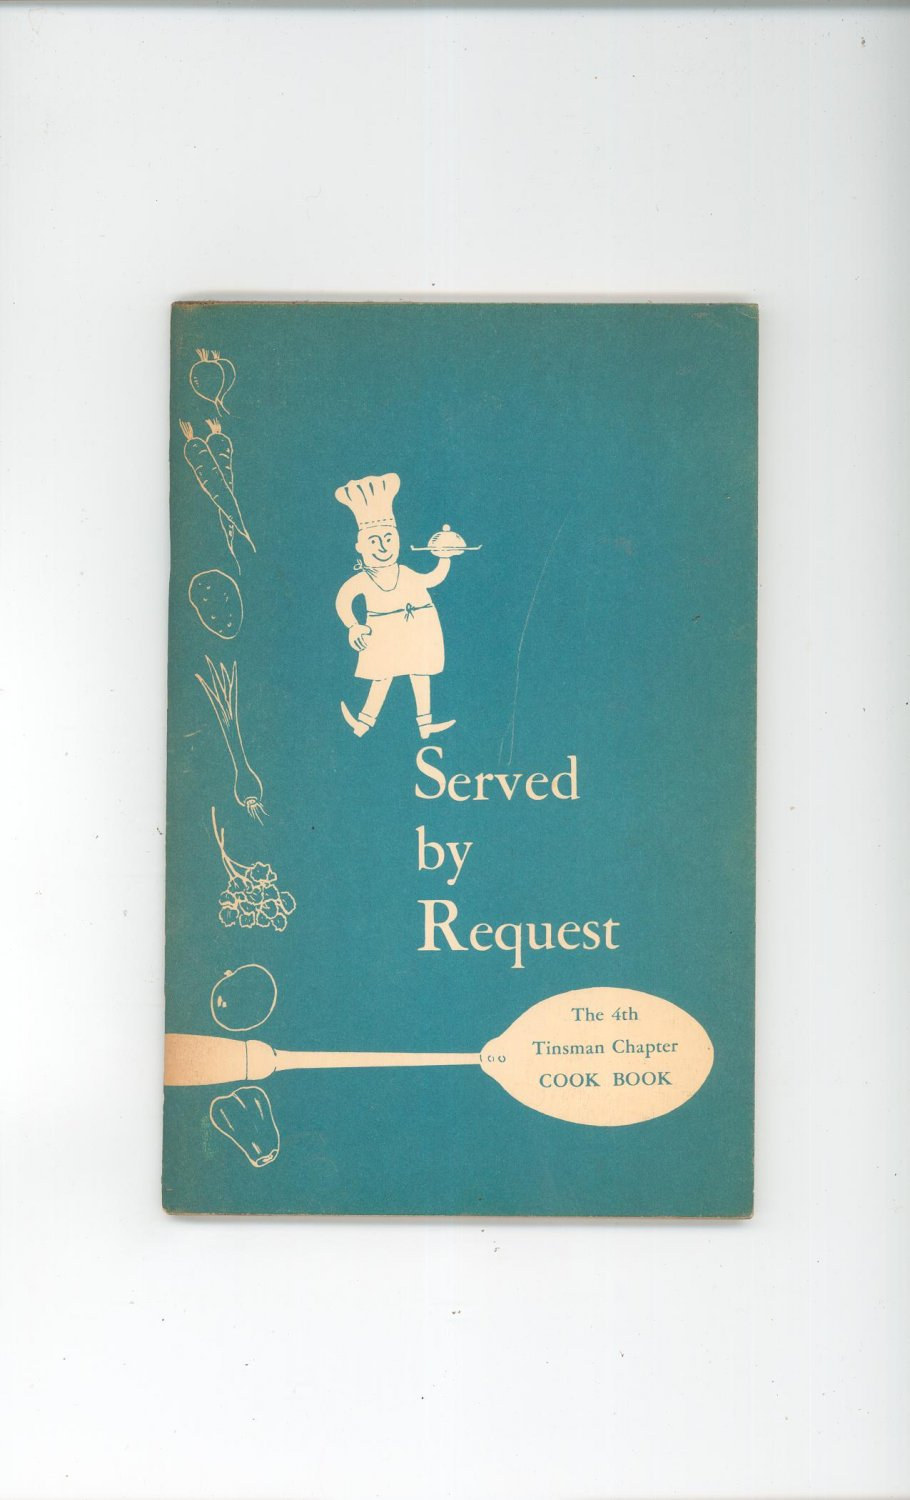 Vintage Served By Request Cookbook Regional Tinsman Chapter New York Y.W.C.A.